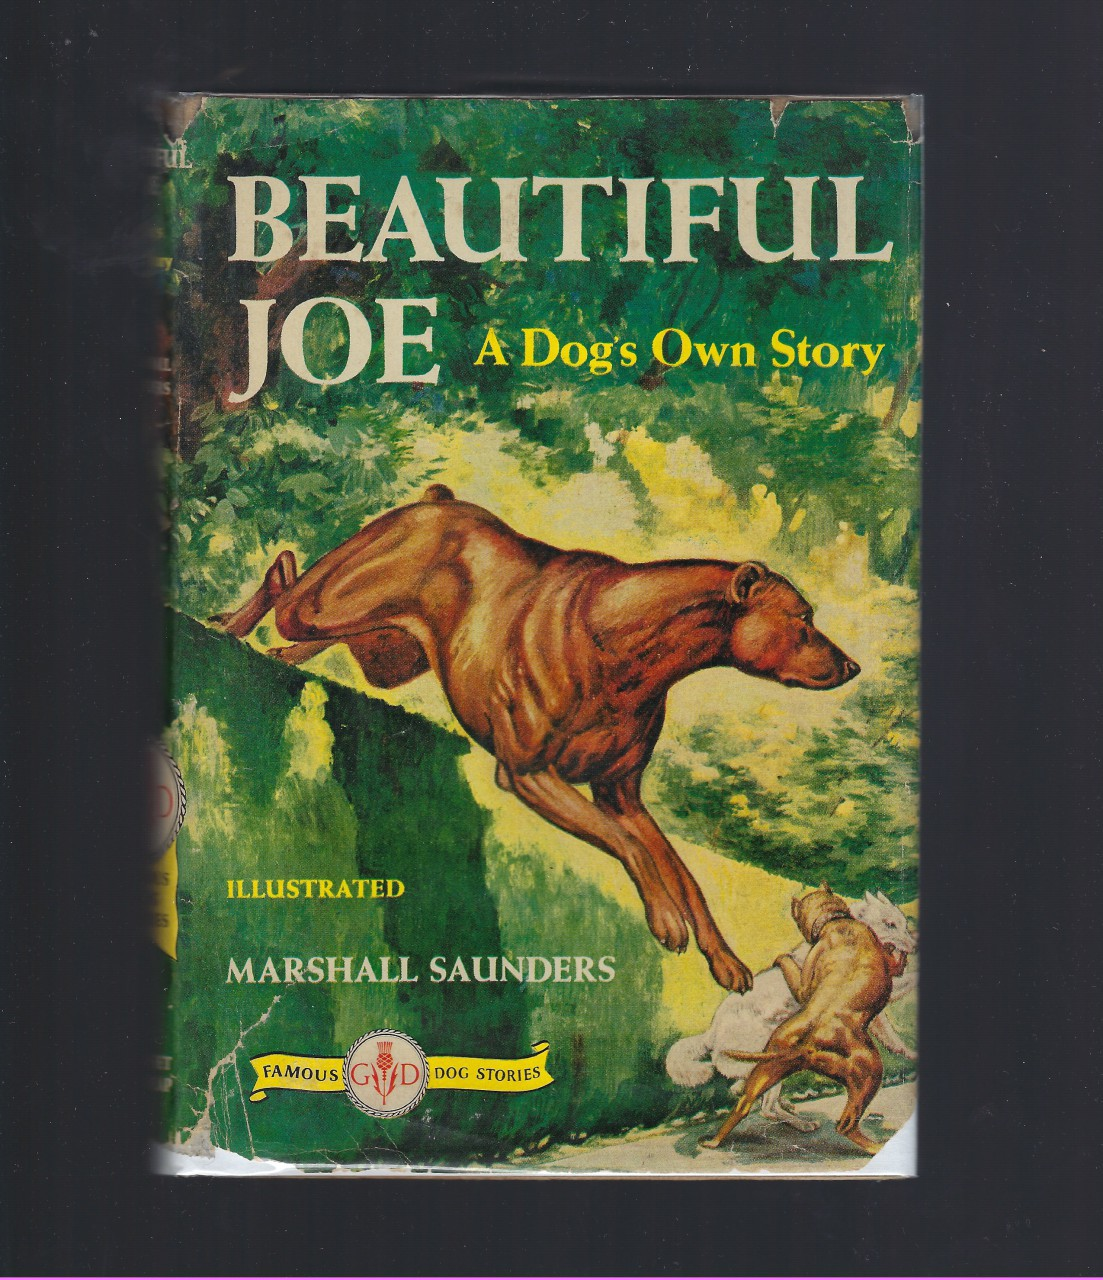 Beautiful Joe A Dog's Own Story (Famous Dog Stories) HB/DJ, Saunders, Marshall